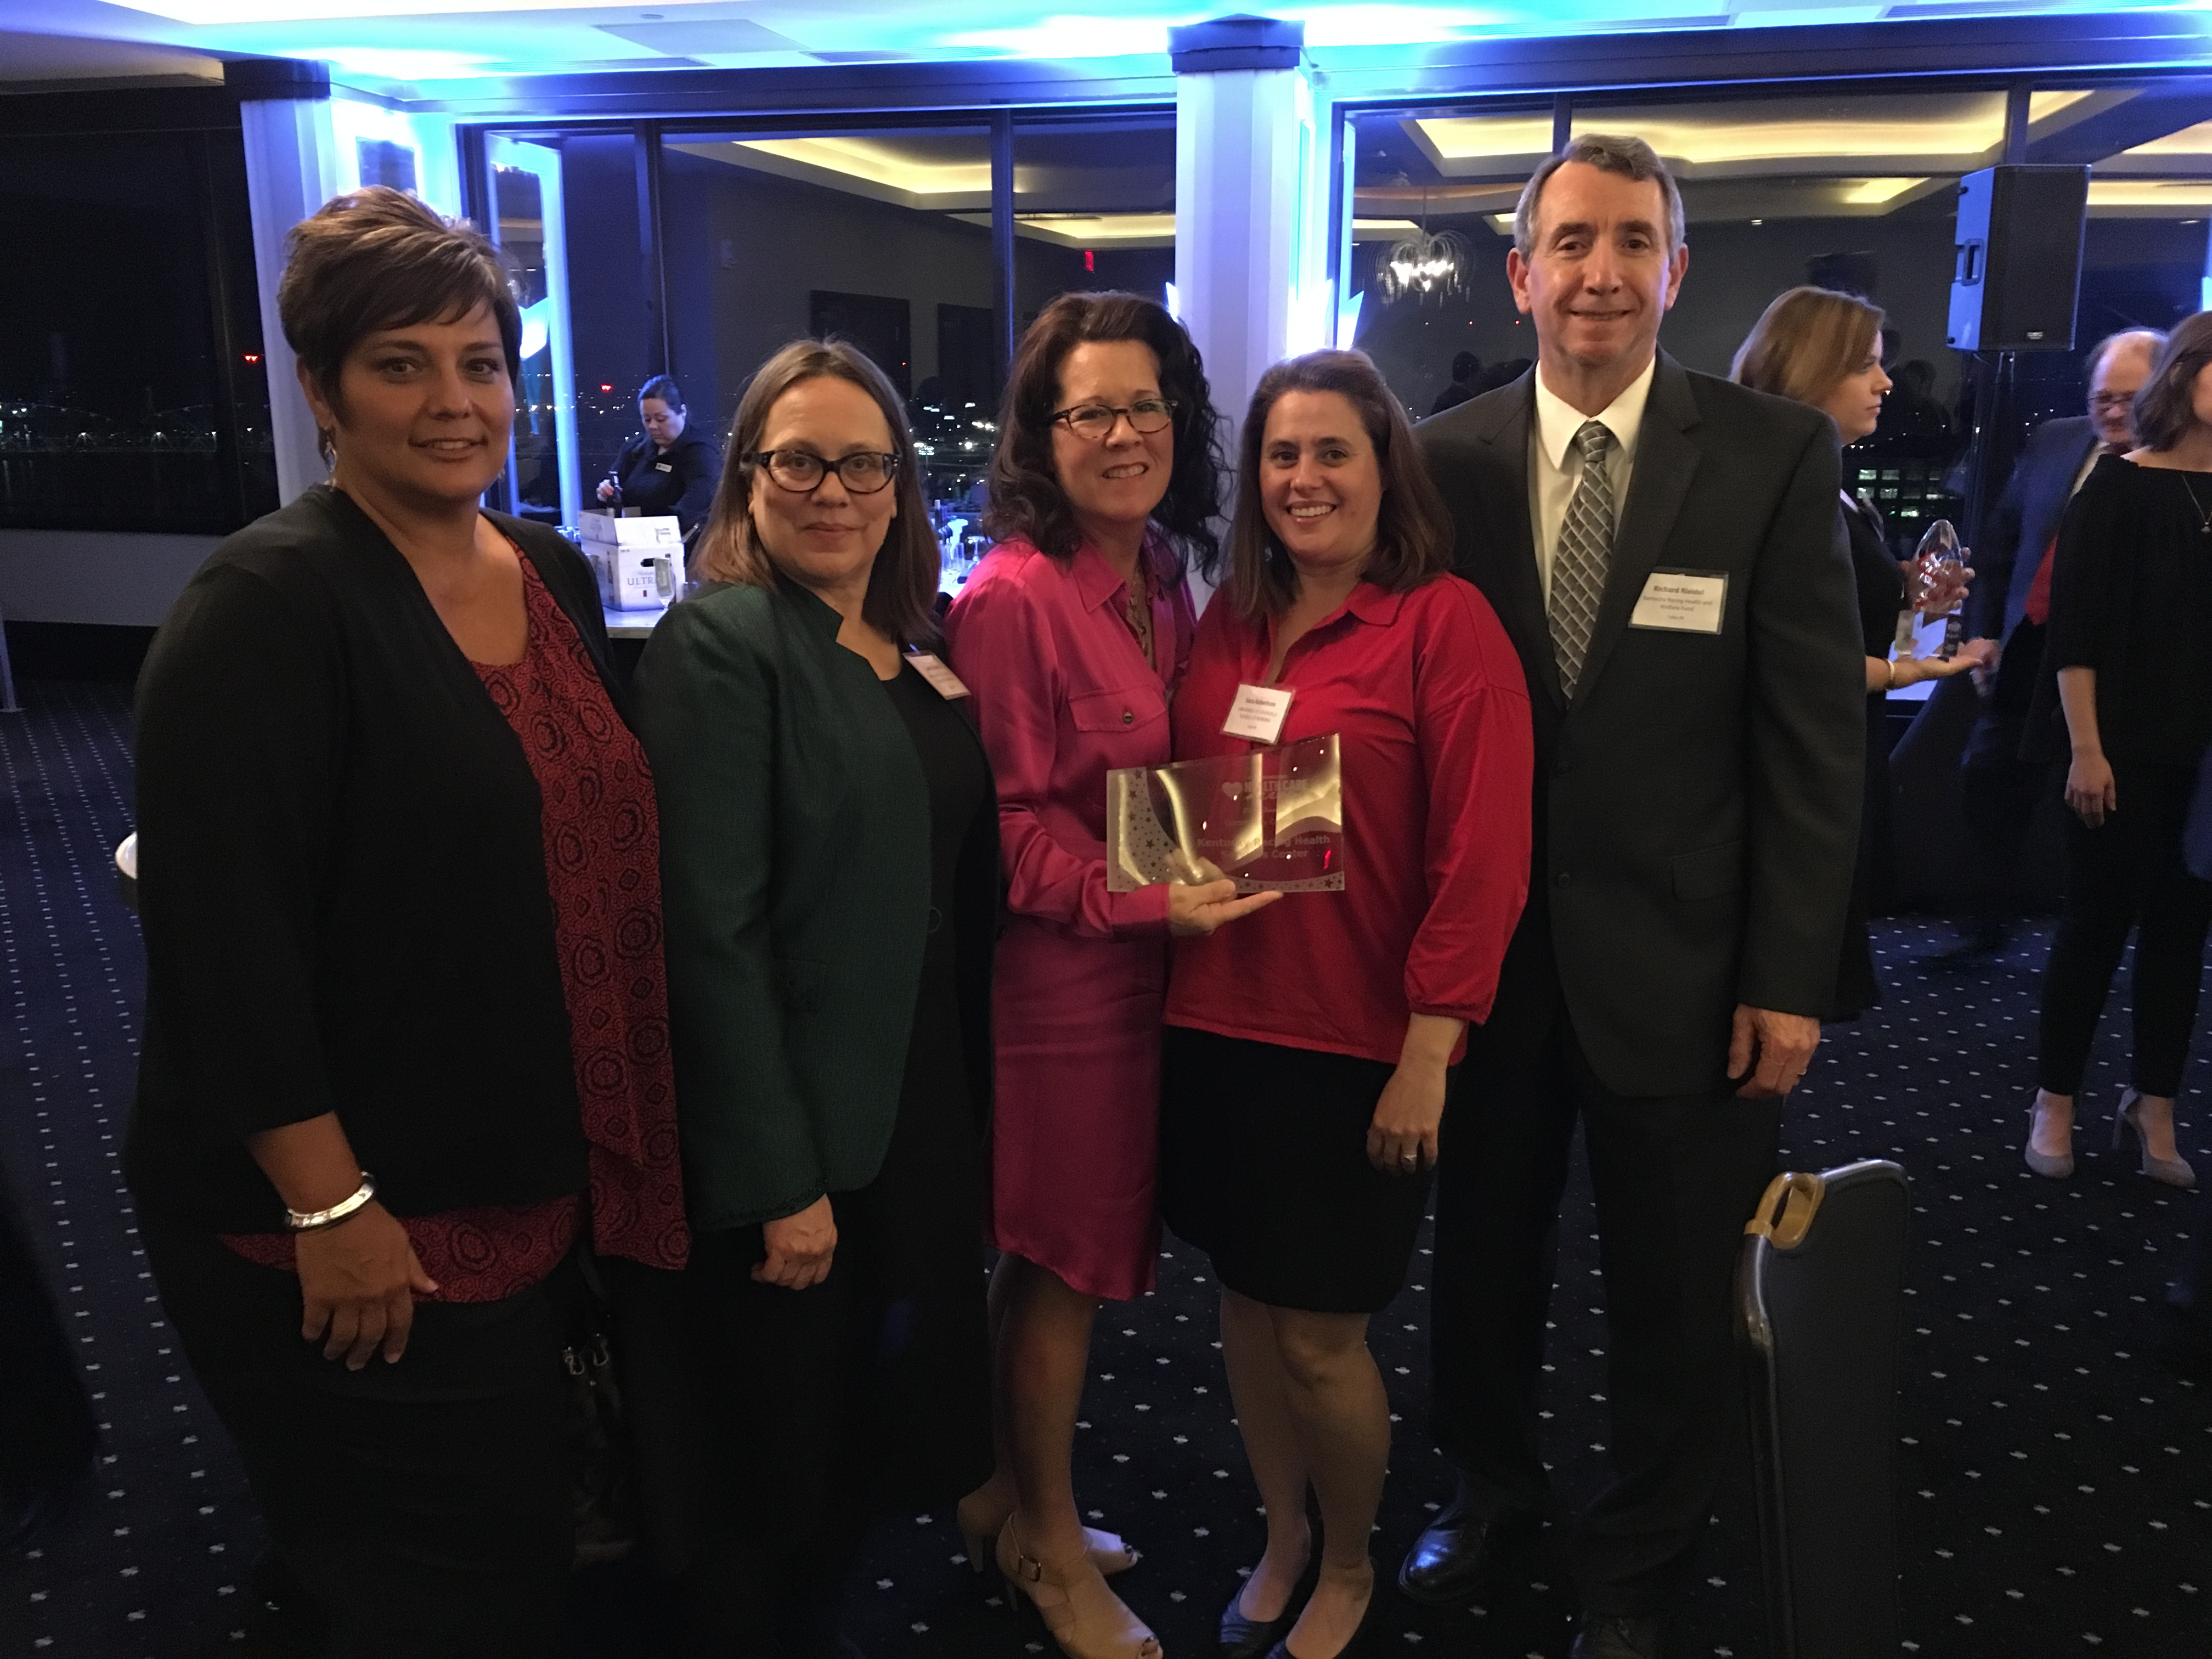 Racetrack clinic honored at Health Care Heroes Awards